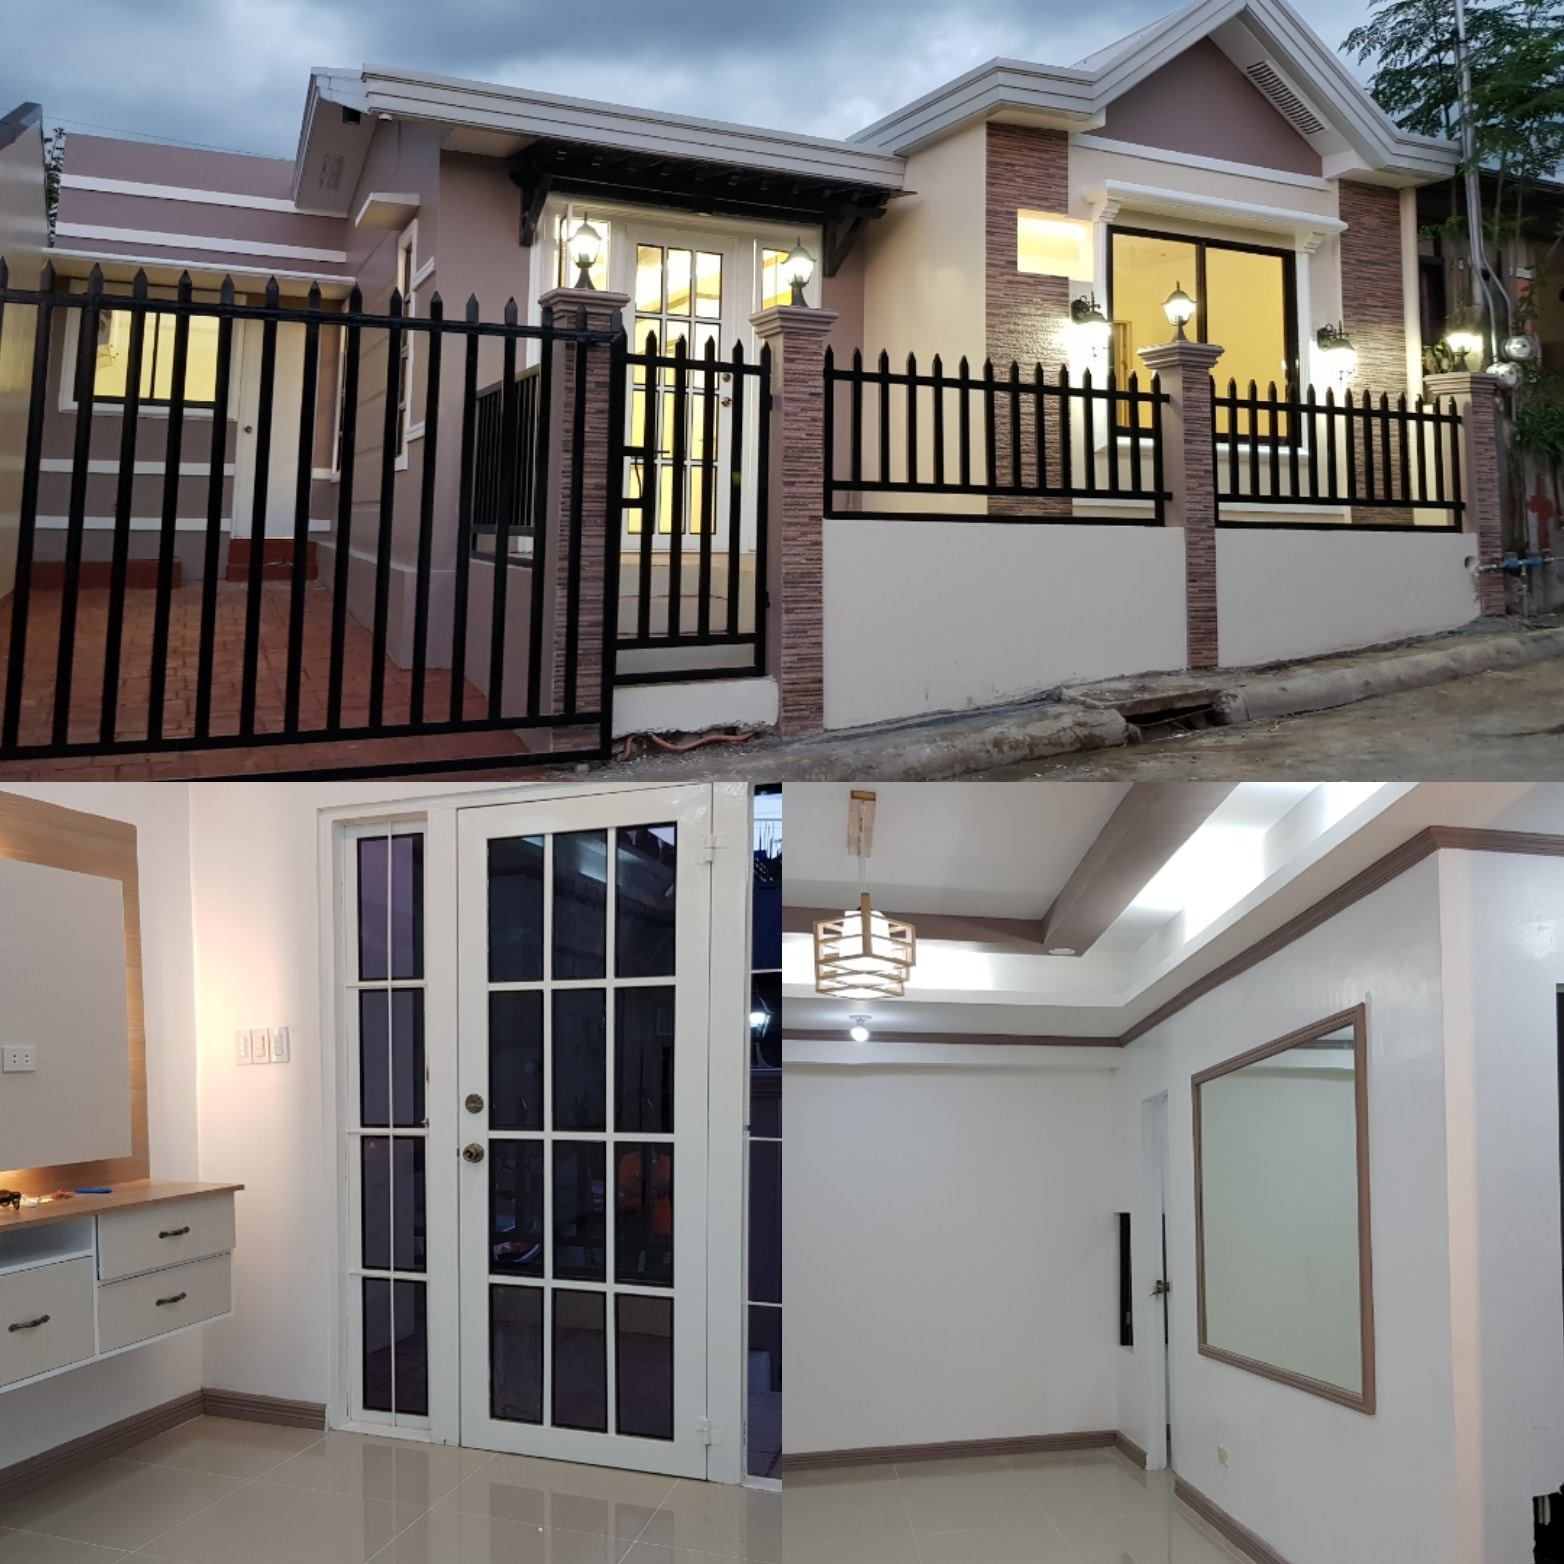 Soon! Another unit for Assume in Deca Homes Indangan Phase 4...